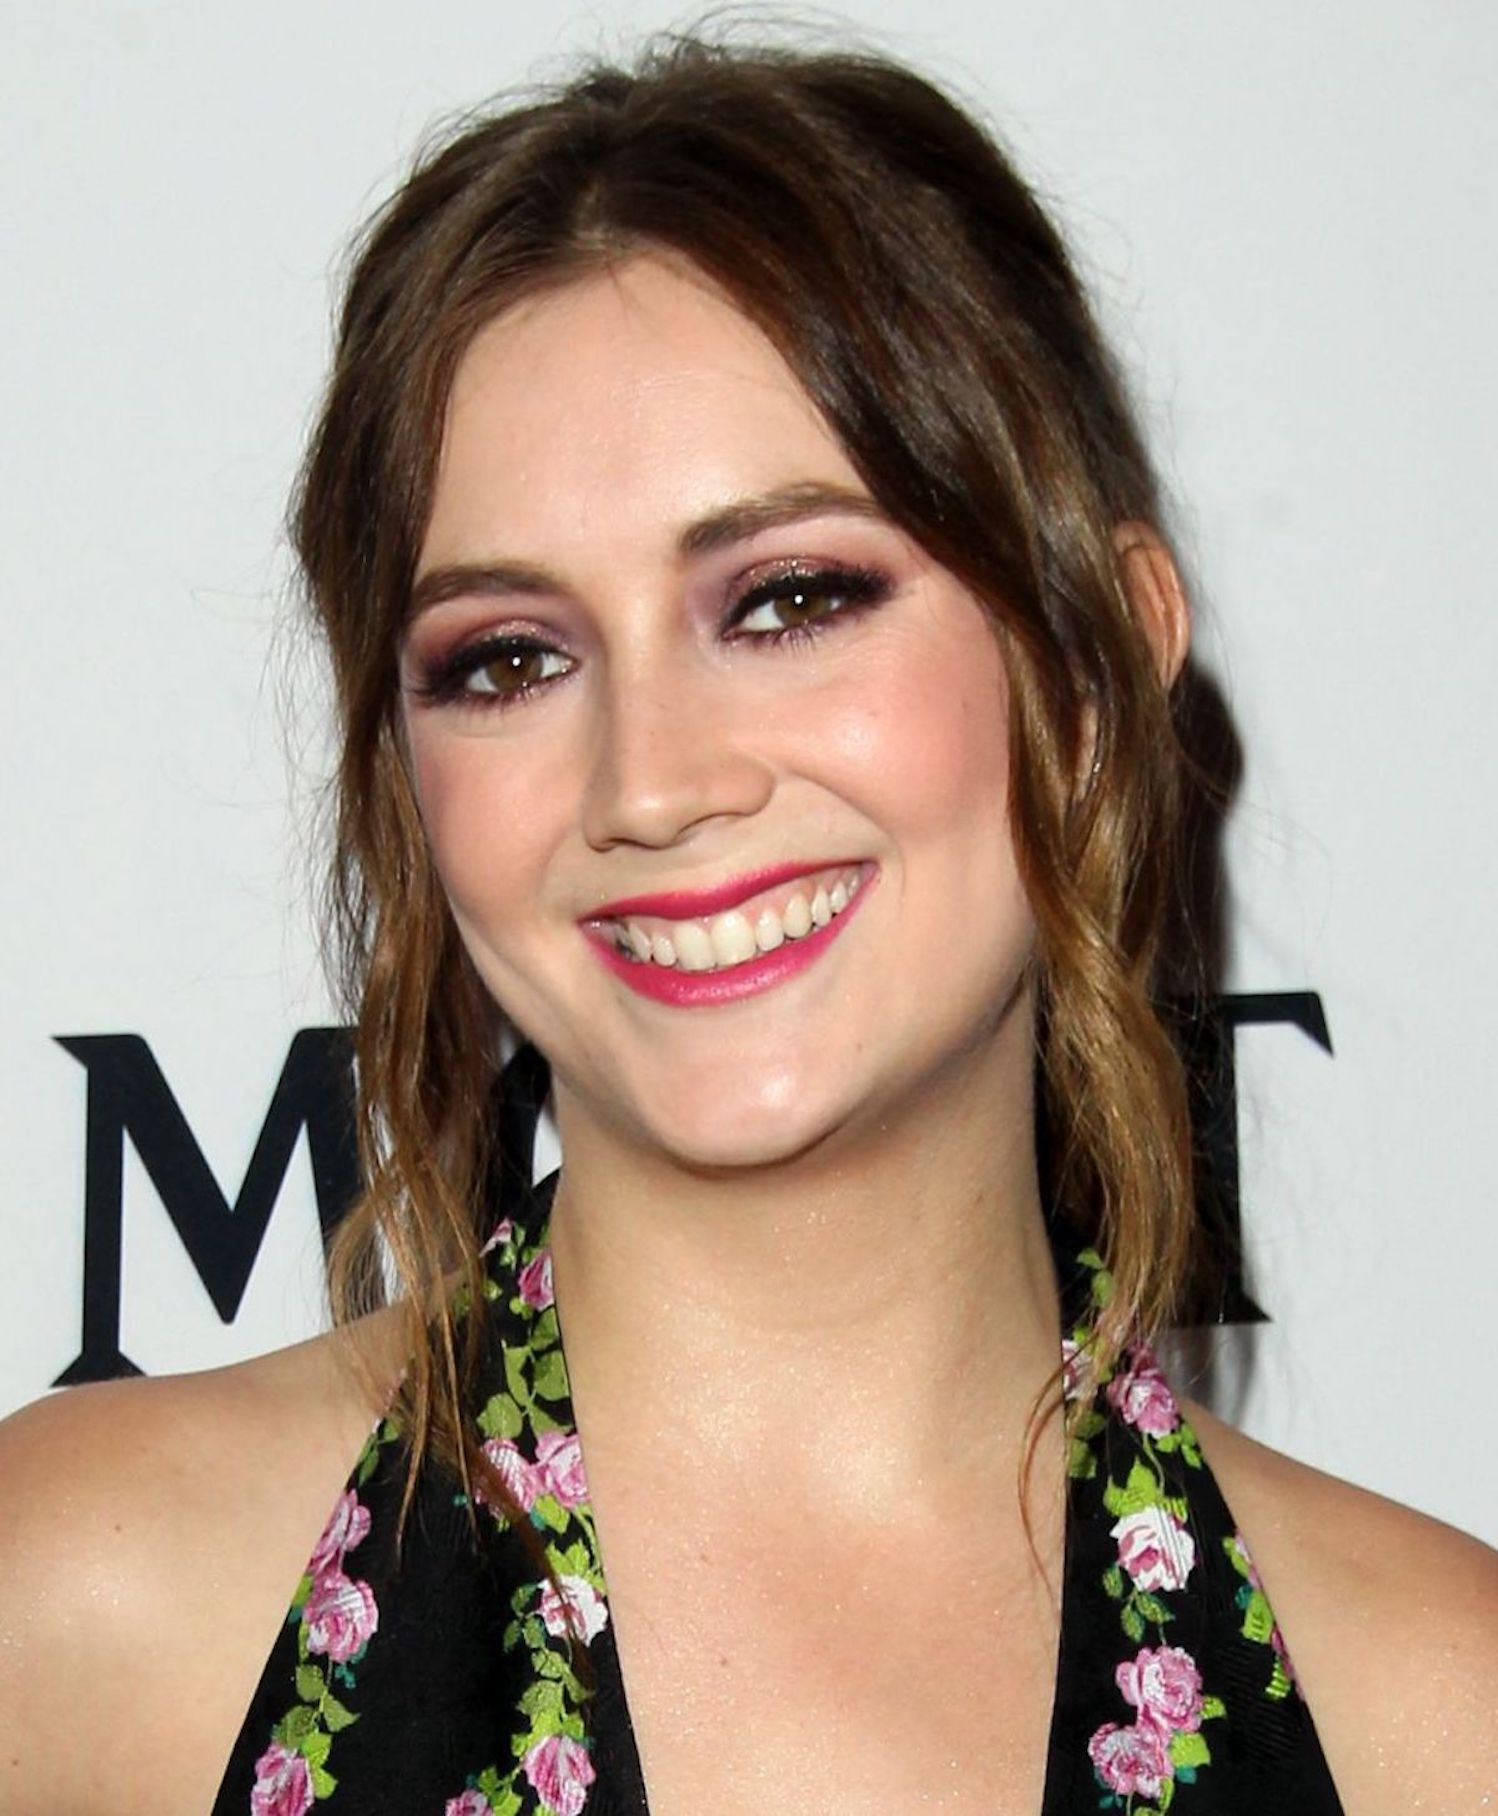 File:Billie Lourd.jpg